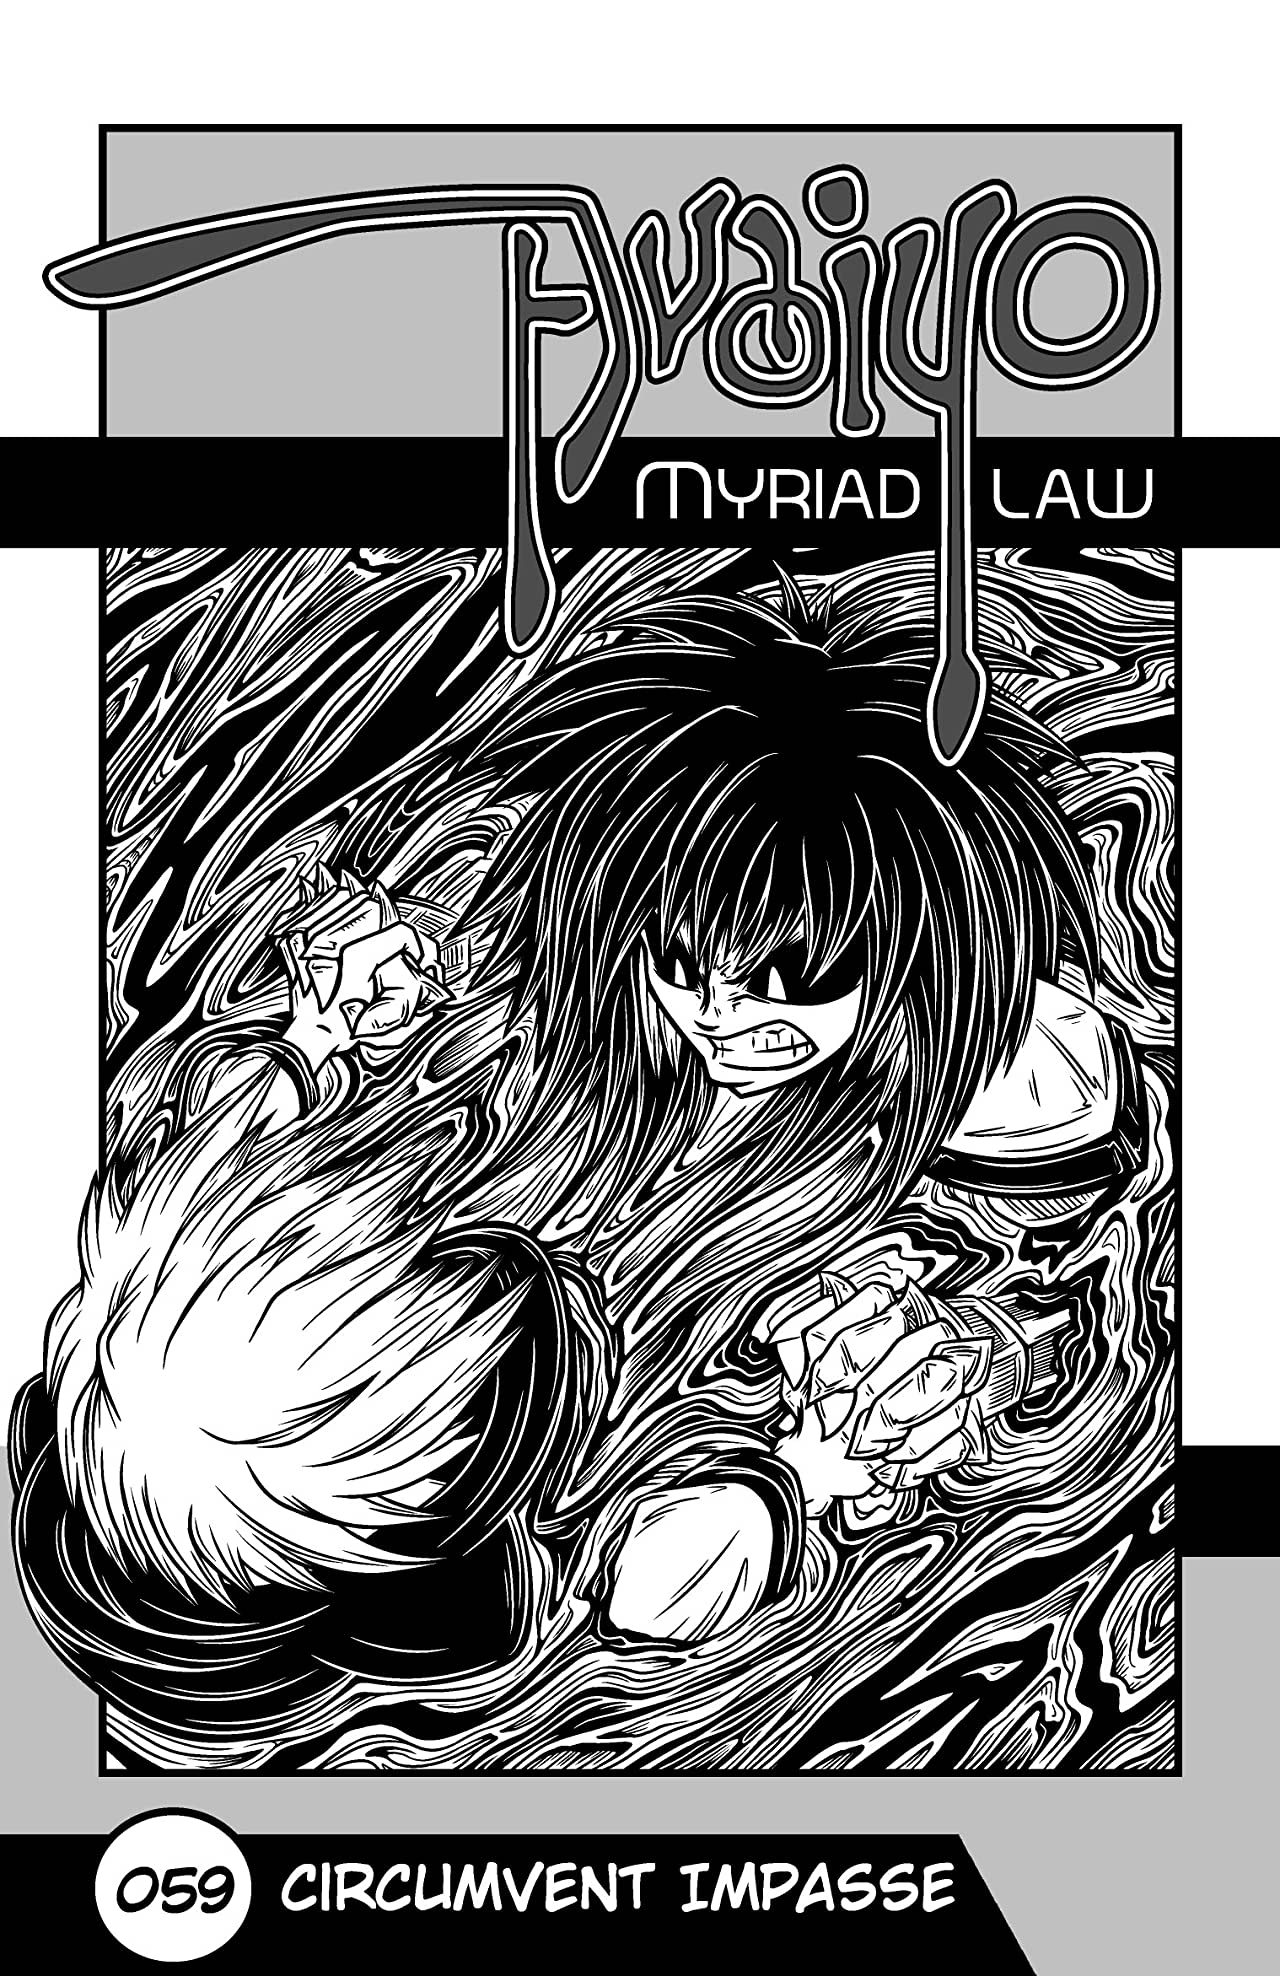 Avaiyo: Myriad Law #059